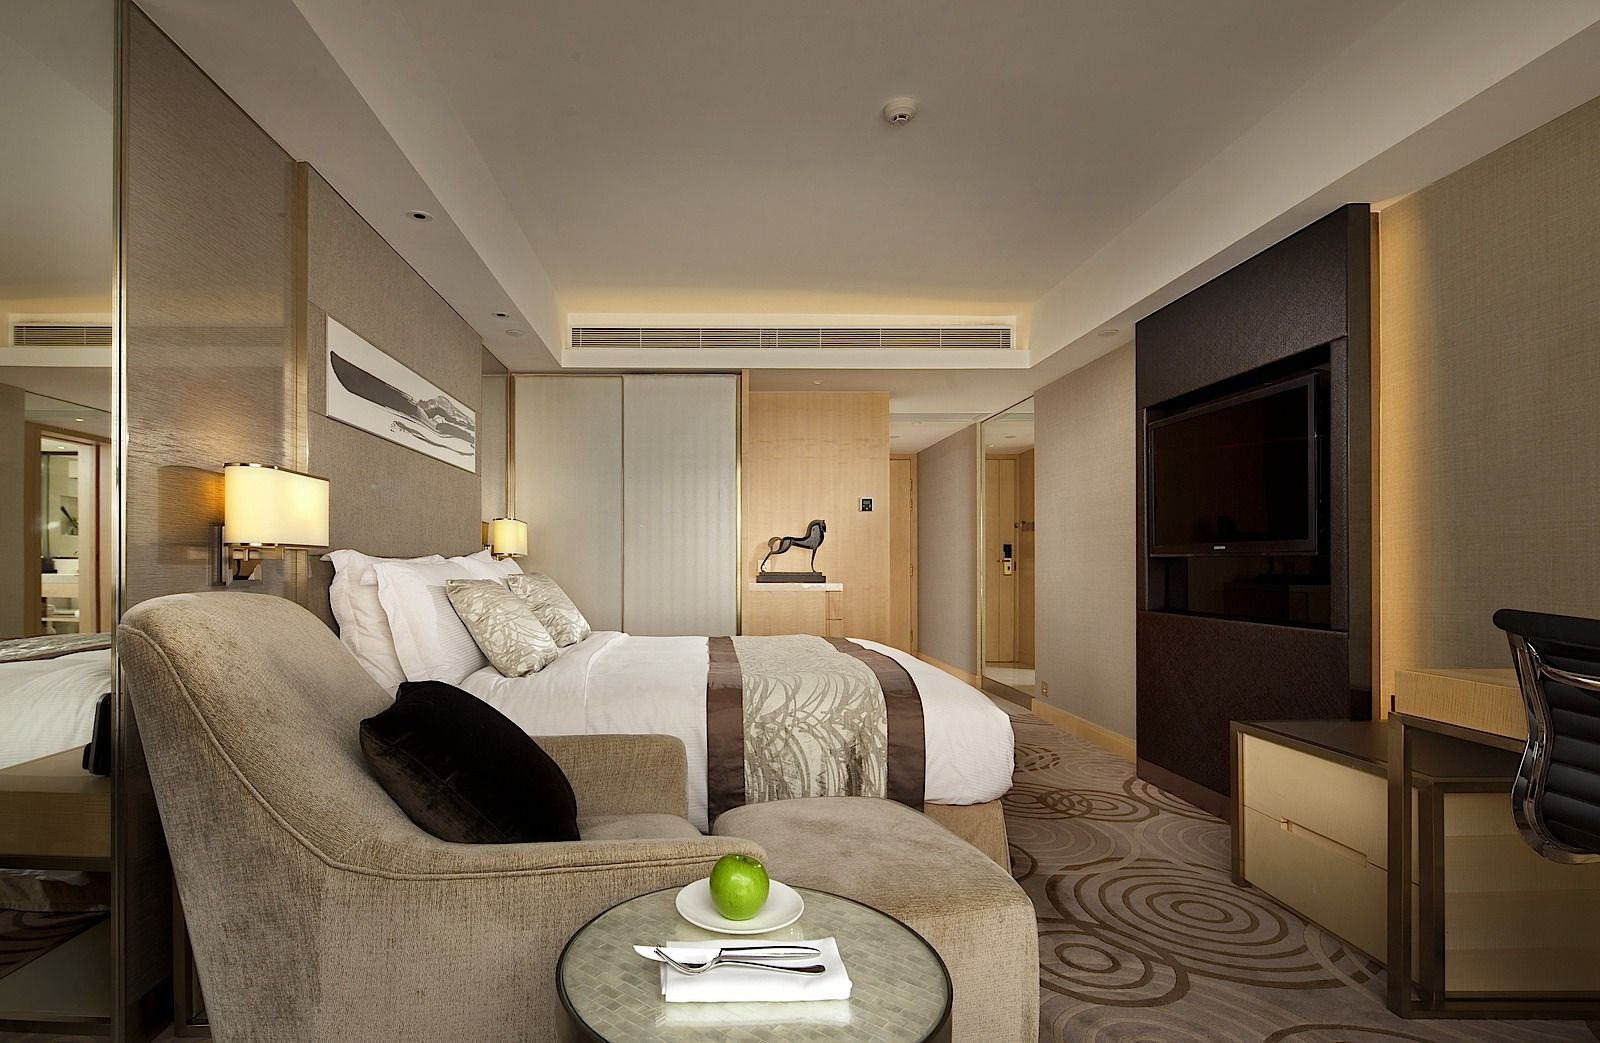 5 Star Accommodation In Kowloon Hong Kong The Royal Garden Hotel Interiors Hotel Hotel Bed